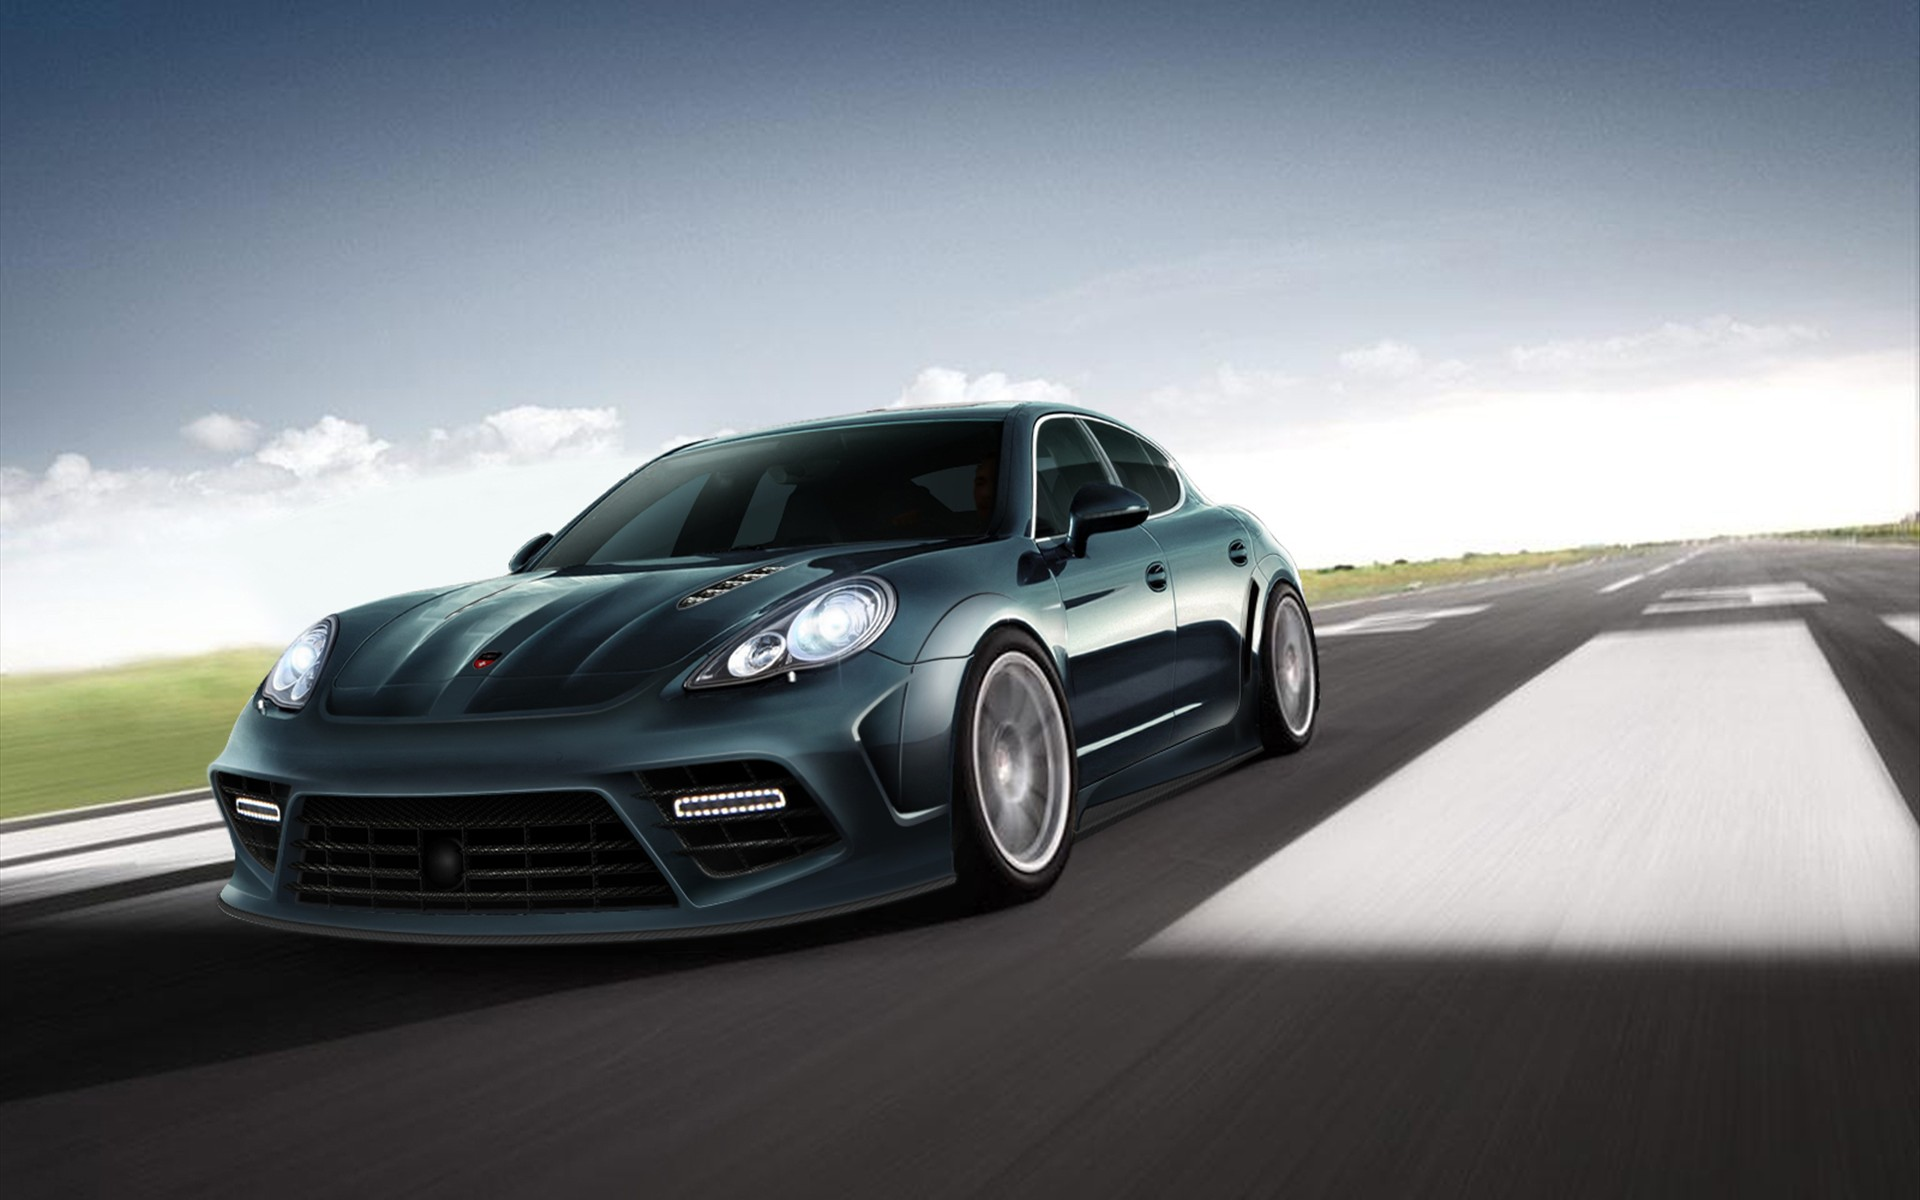 mansory porsche panamera 2 wallpaper | hd car wallpapers | id #1506